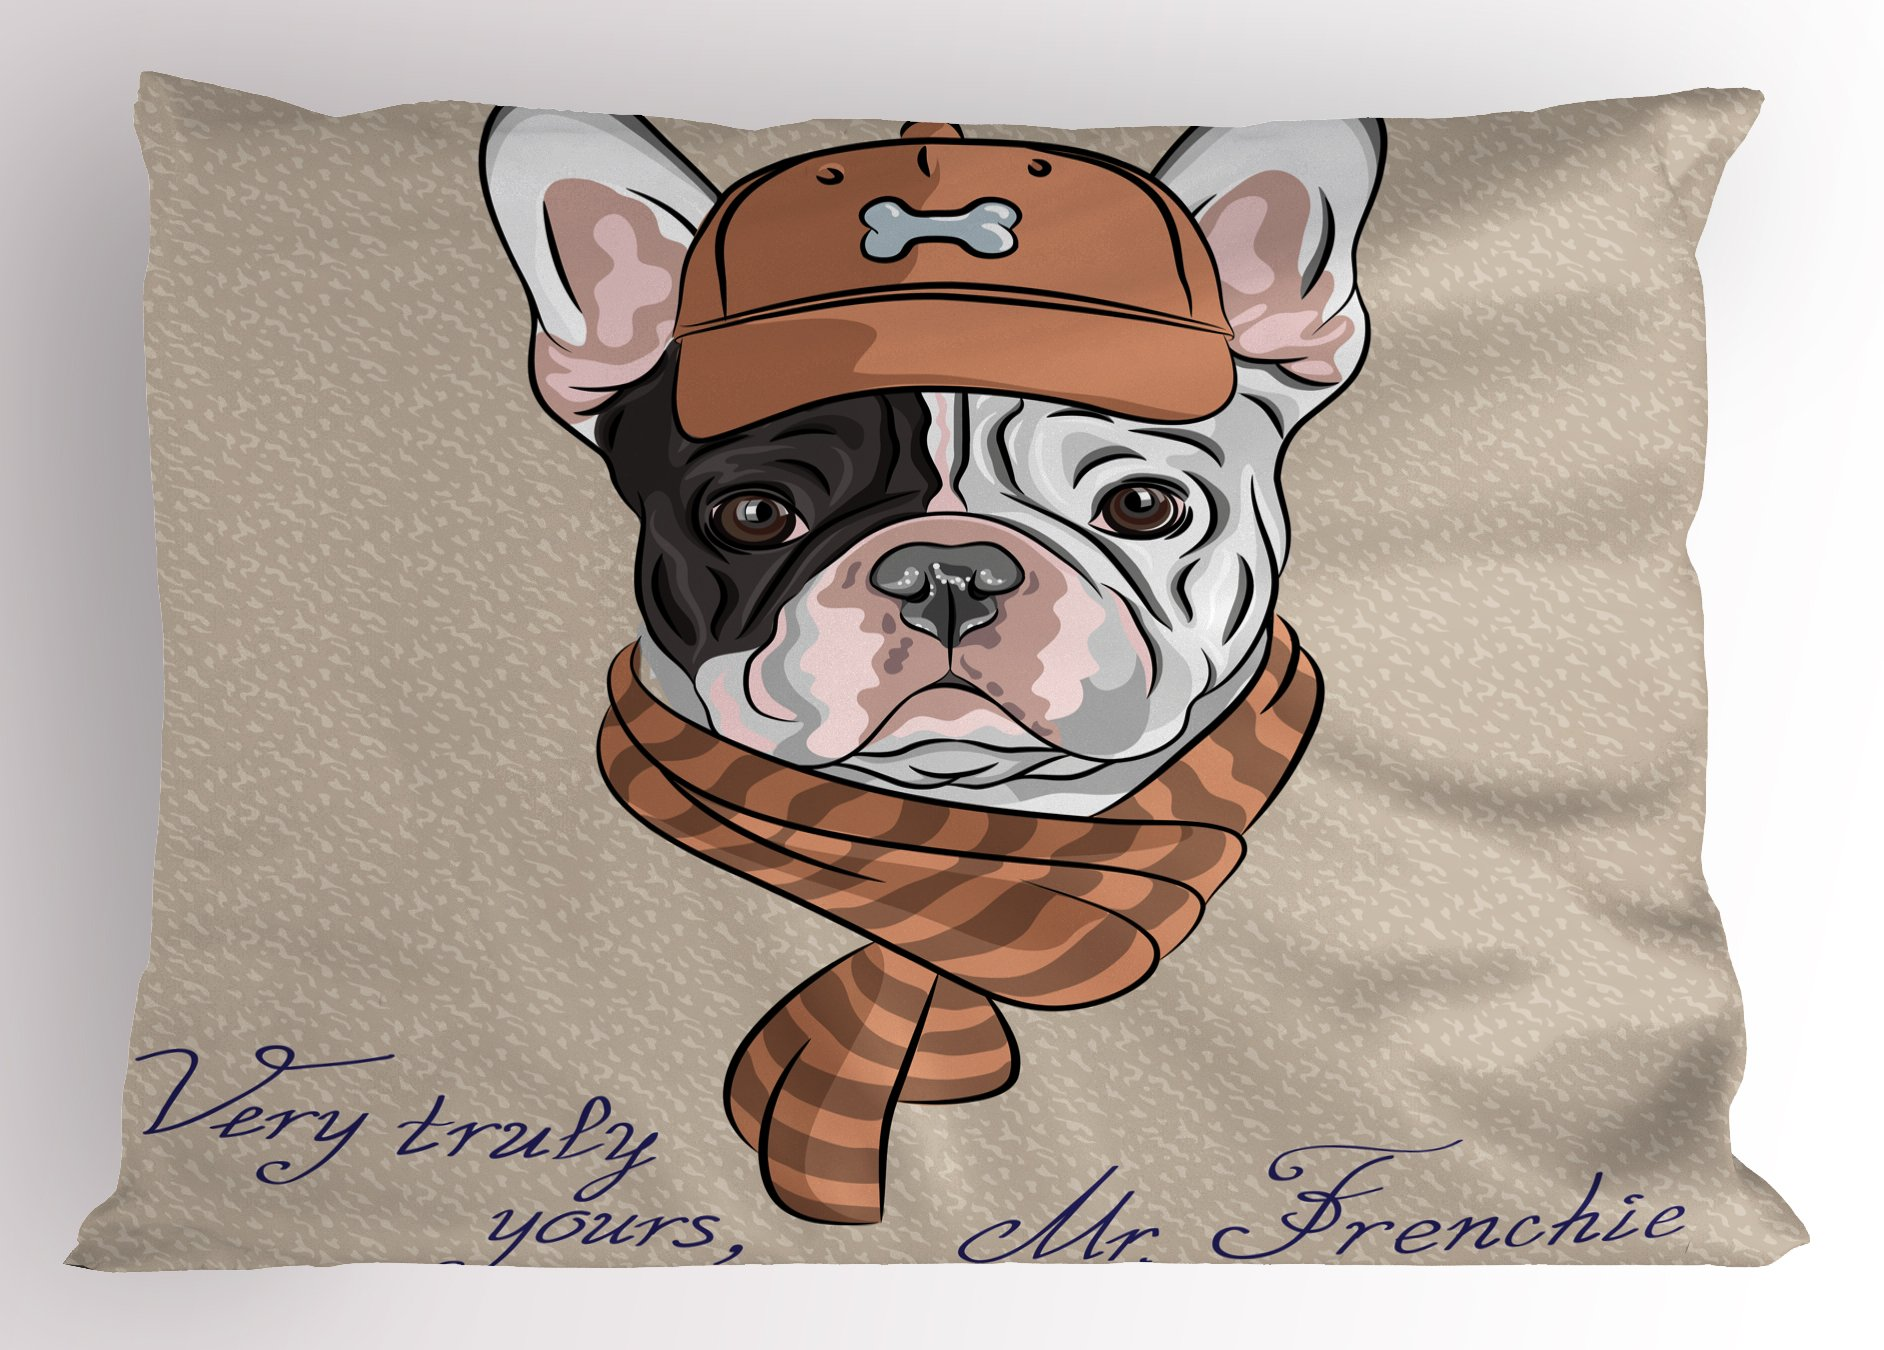 Ambesonne Vintage Pillow Sham, Funny Hipster French Bulldog with Cap and Lines Scarf Punk Animal Humor Art, Decorative Standard King Size Printed Pillowcase, 36 X 20 inches, Ecru Pink Brown